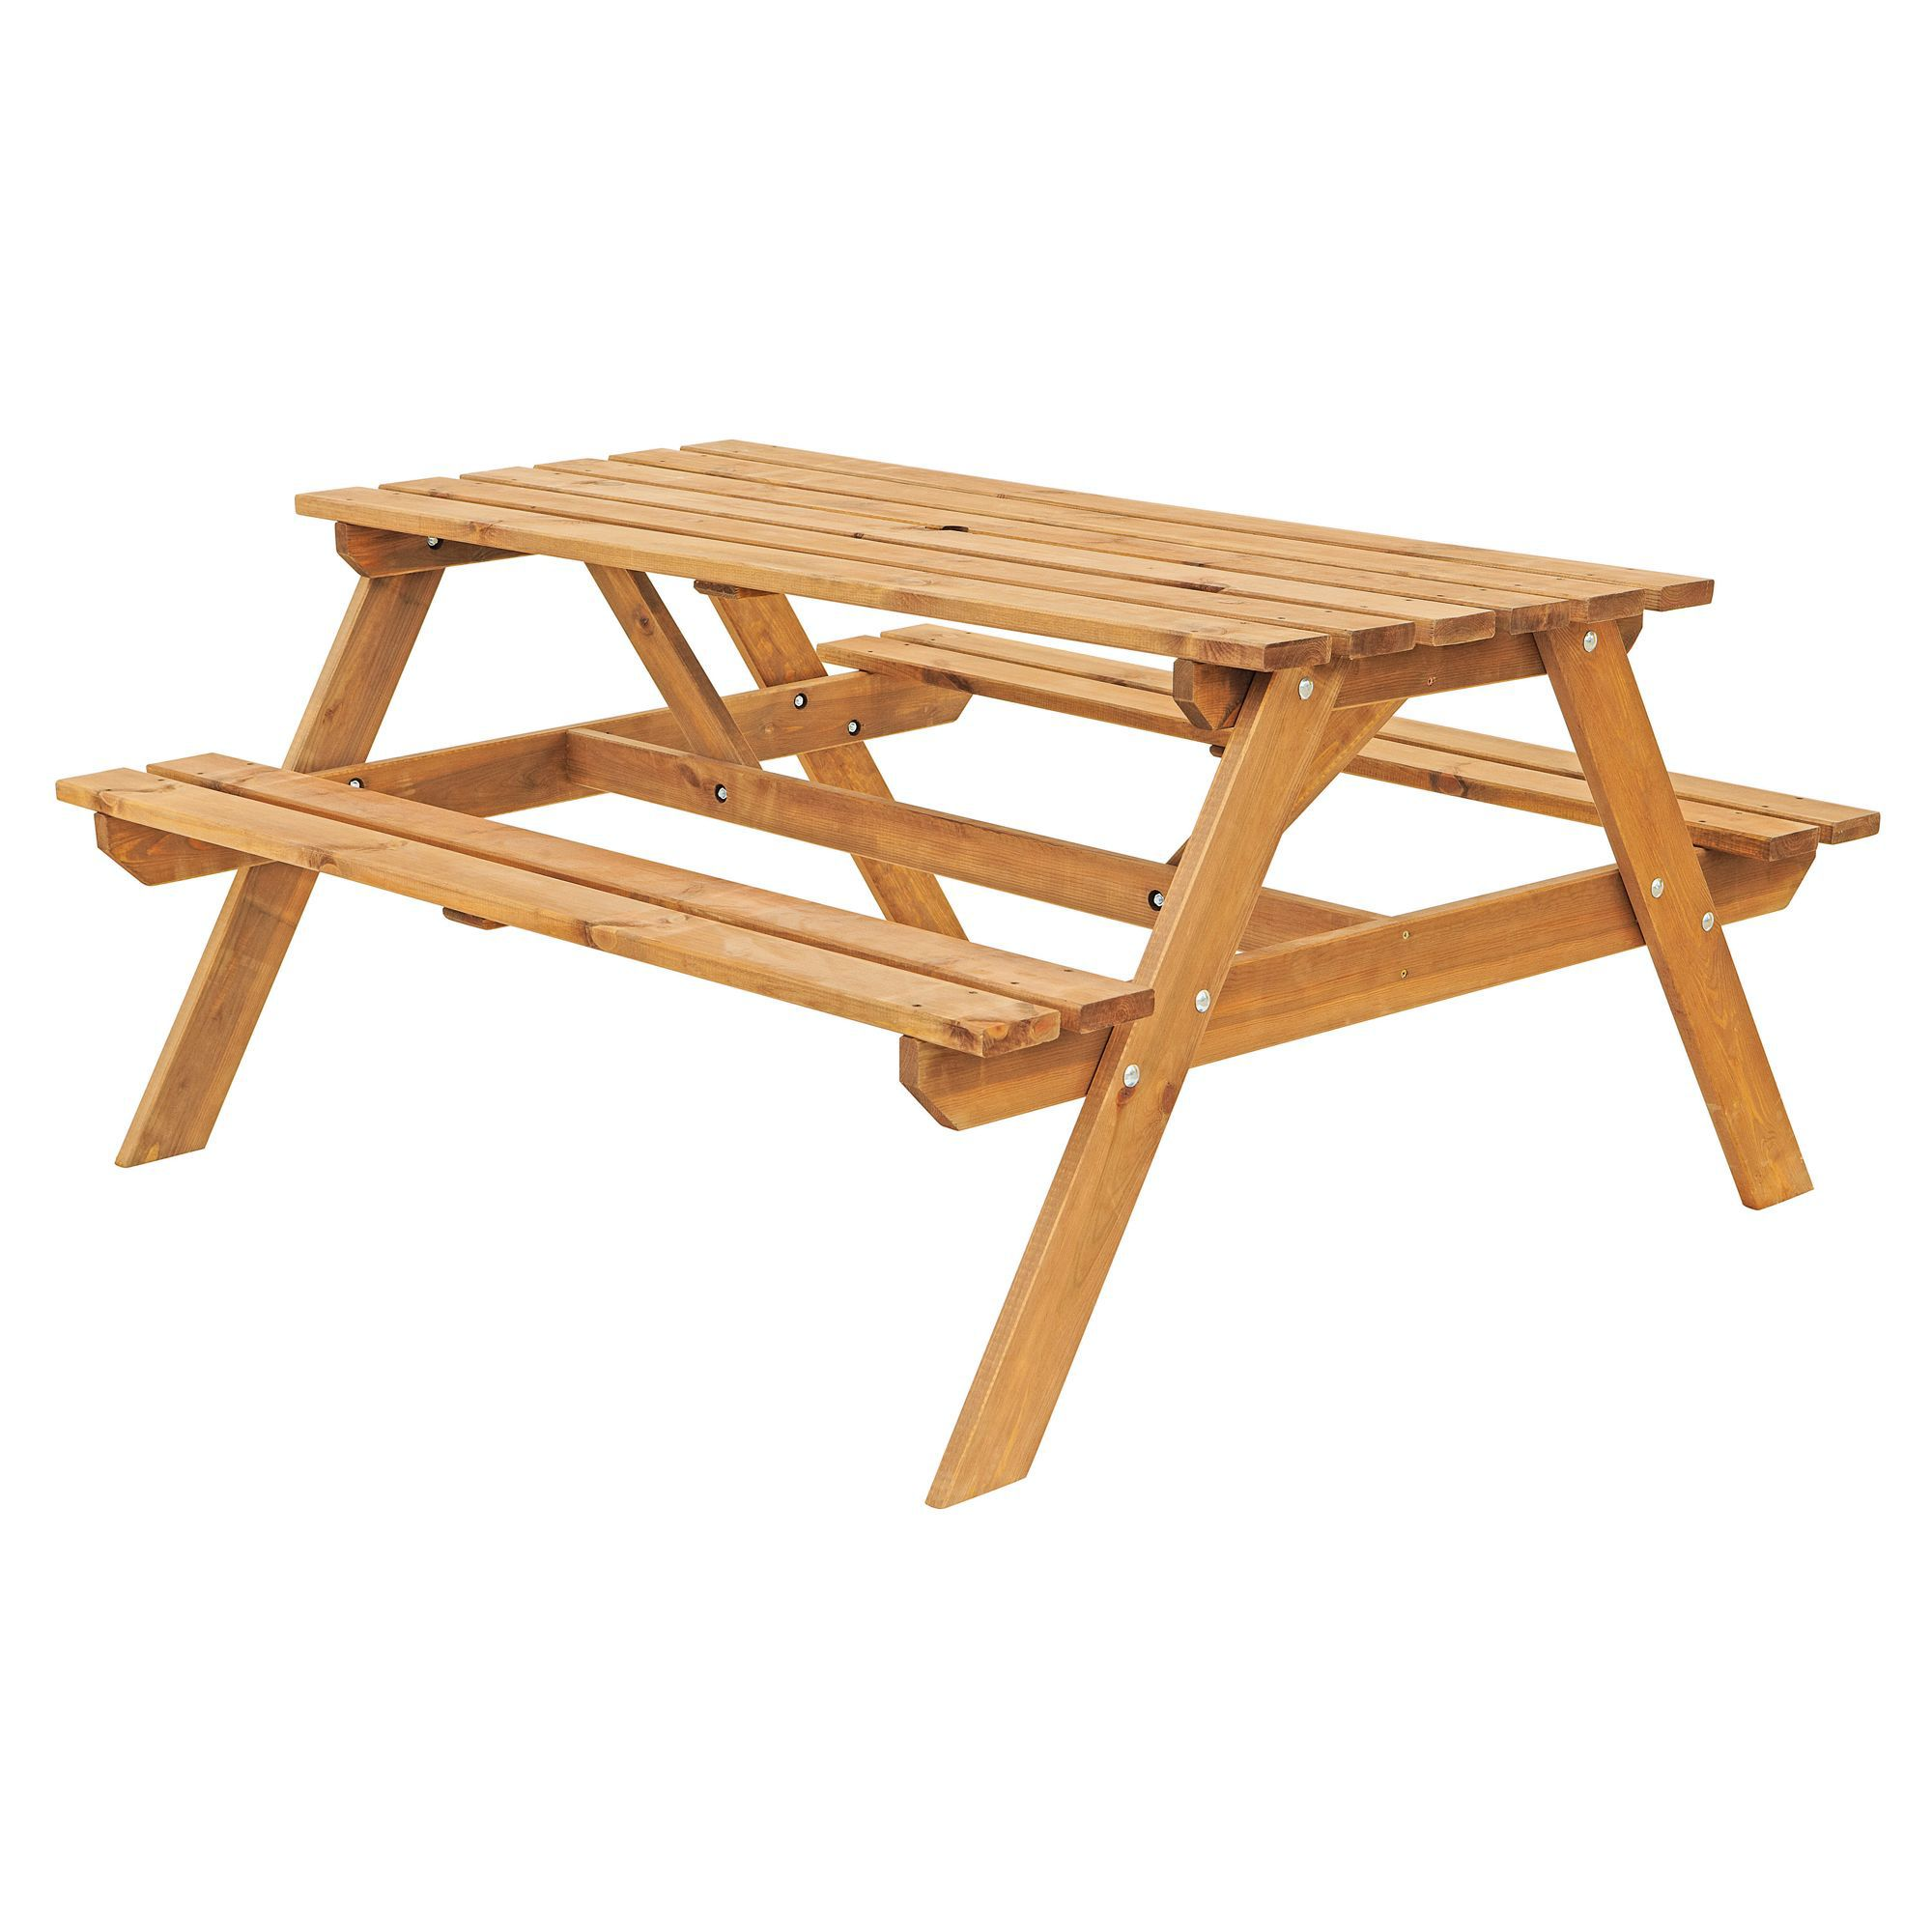 Batam Timber Picnic Bench | Departments | DIY at B&Q